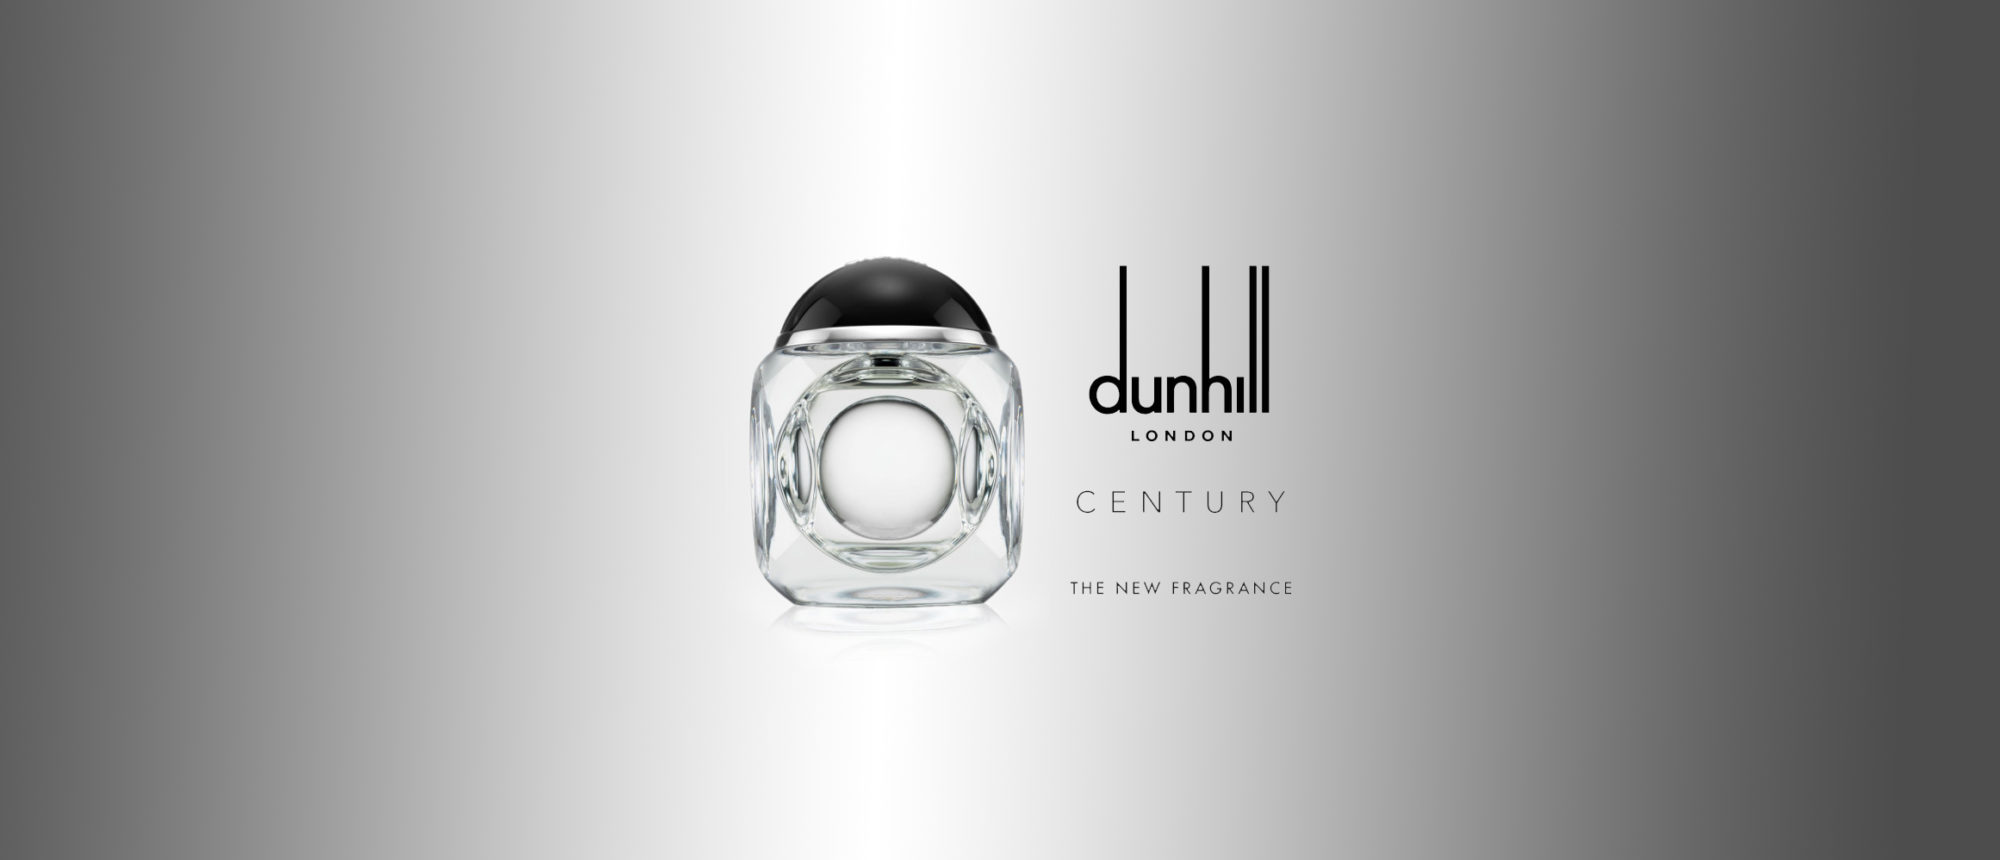 Dunhill London Century New Fragrance at Frontlinestyle Wells